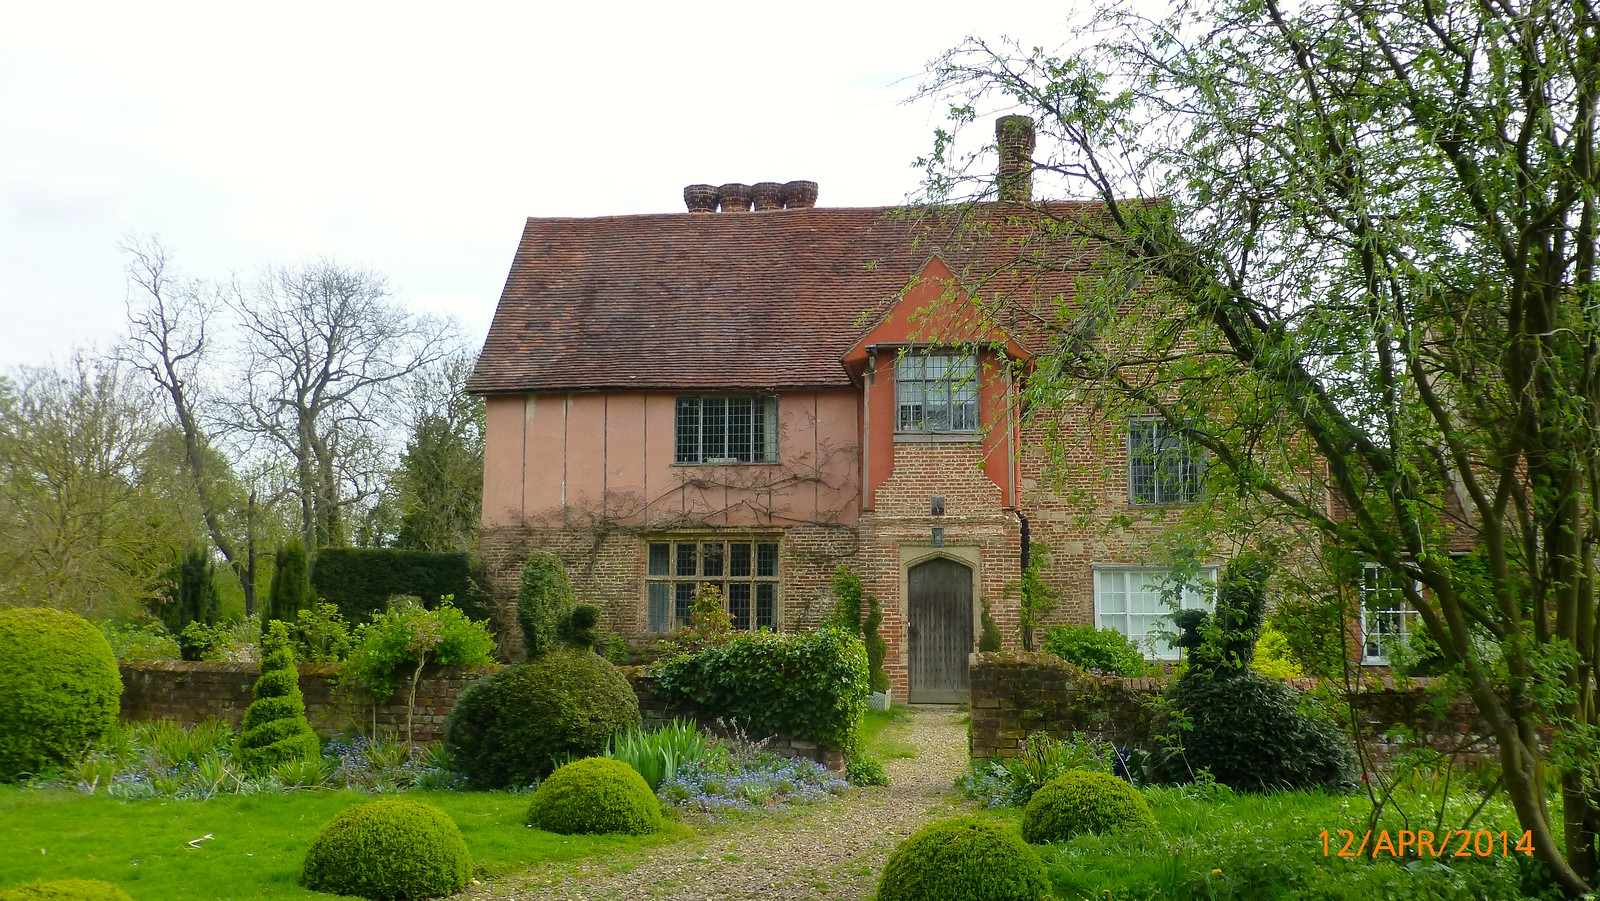 Elizabethan house incorporating remnants of the original Cistercian Abbey buildings SWC Walk 216 Kelvedon Circular